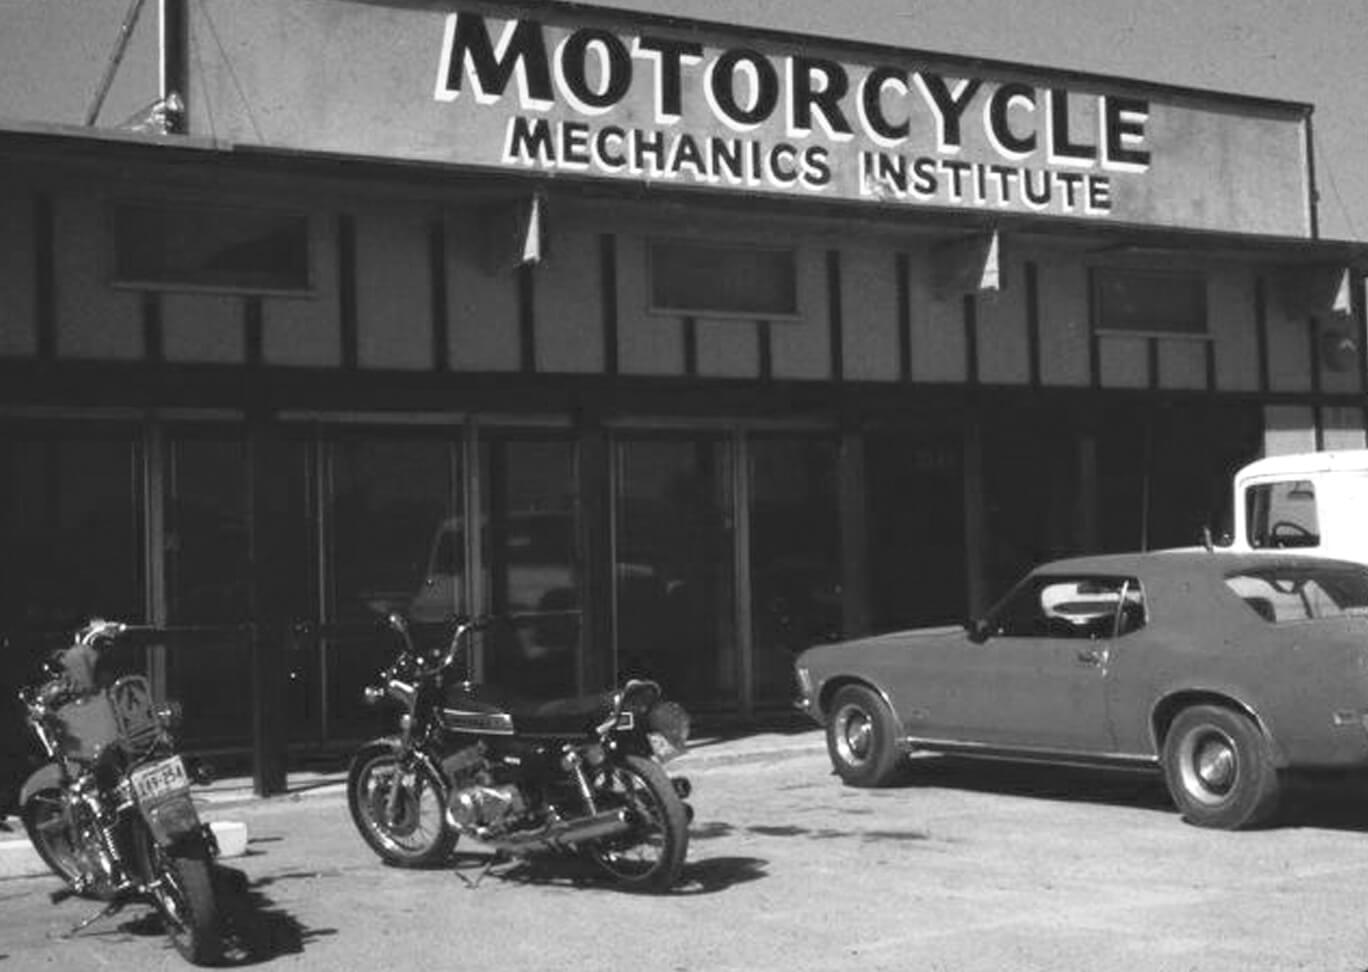 Old black and white exterior photo of the Motorcycle Mechanics Institute in Phoenix Arizona